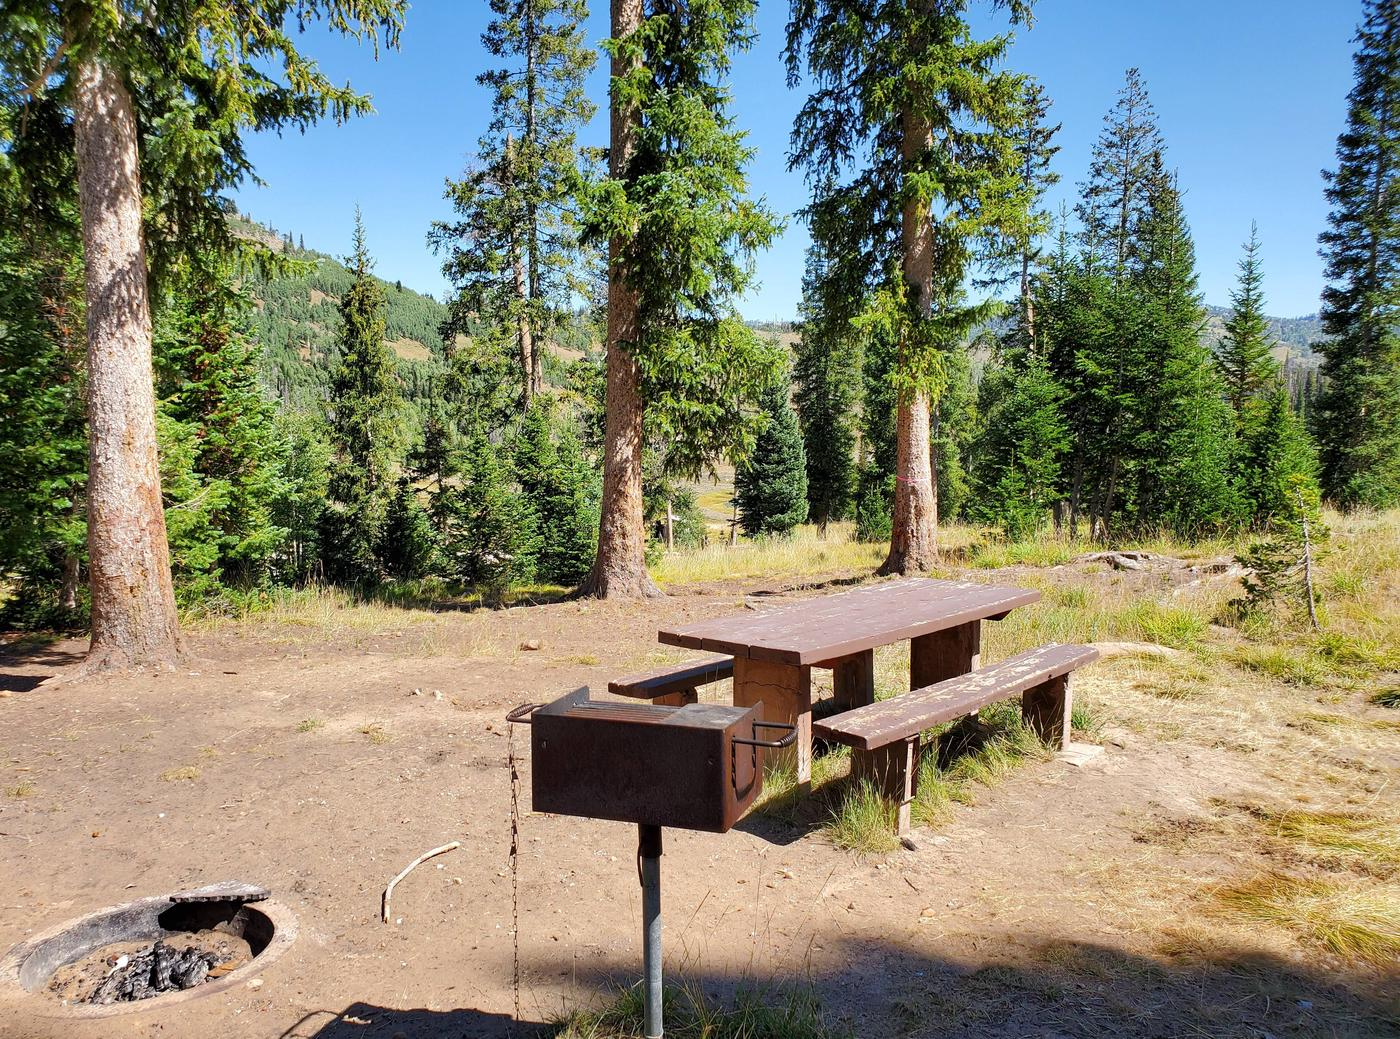 Flat Canyon Campground Site #11bFlat Canyon Campground Site #11